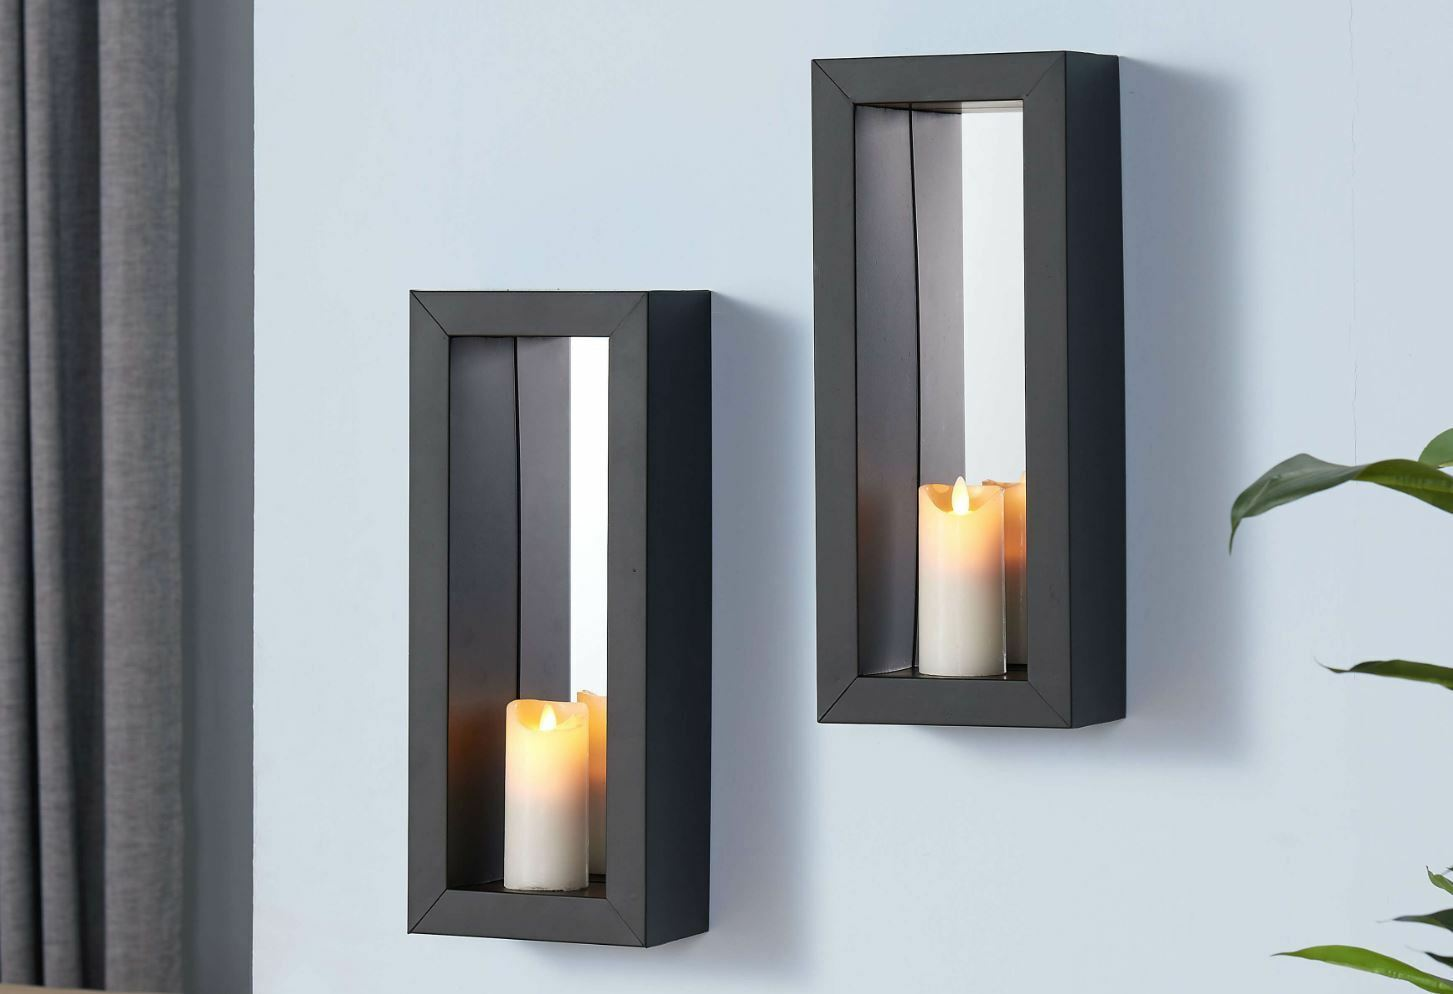 2 mirror candle wall sconce holder set metal pair decor vintage contemporary art ebay. Black Bedroom Furniture Sets. Home Design Ideas